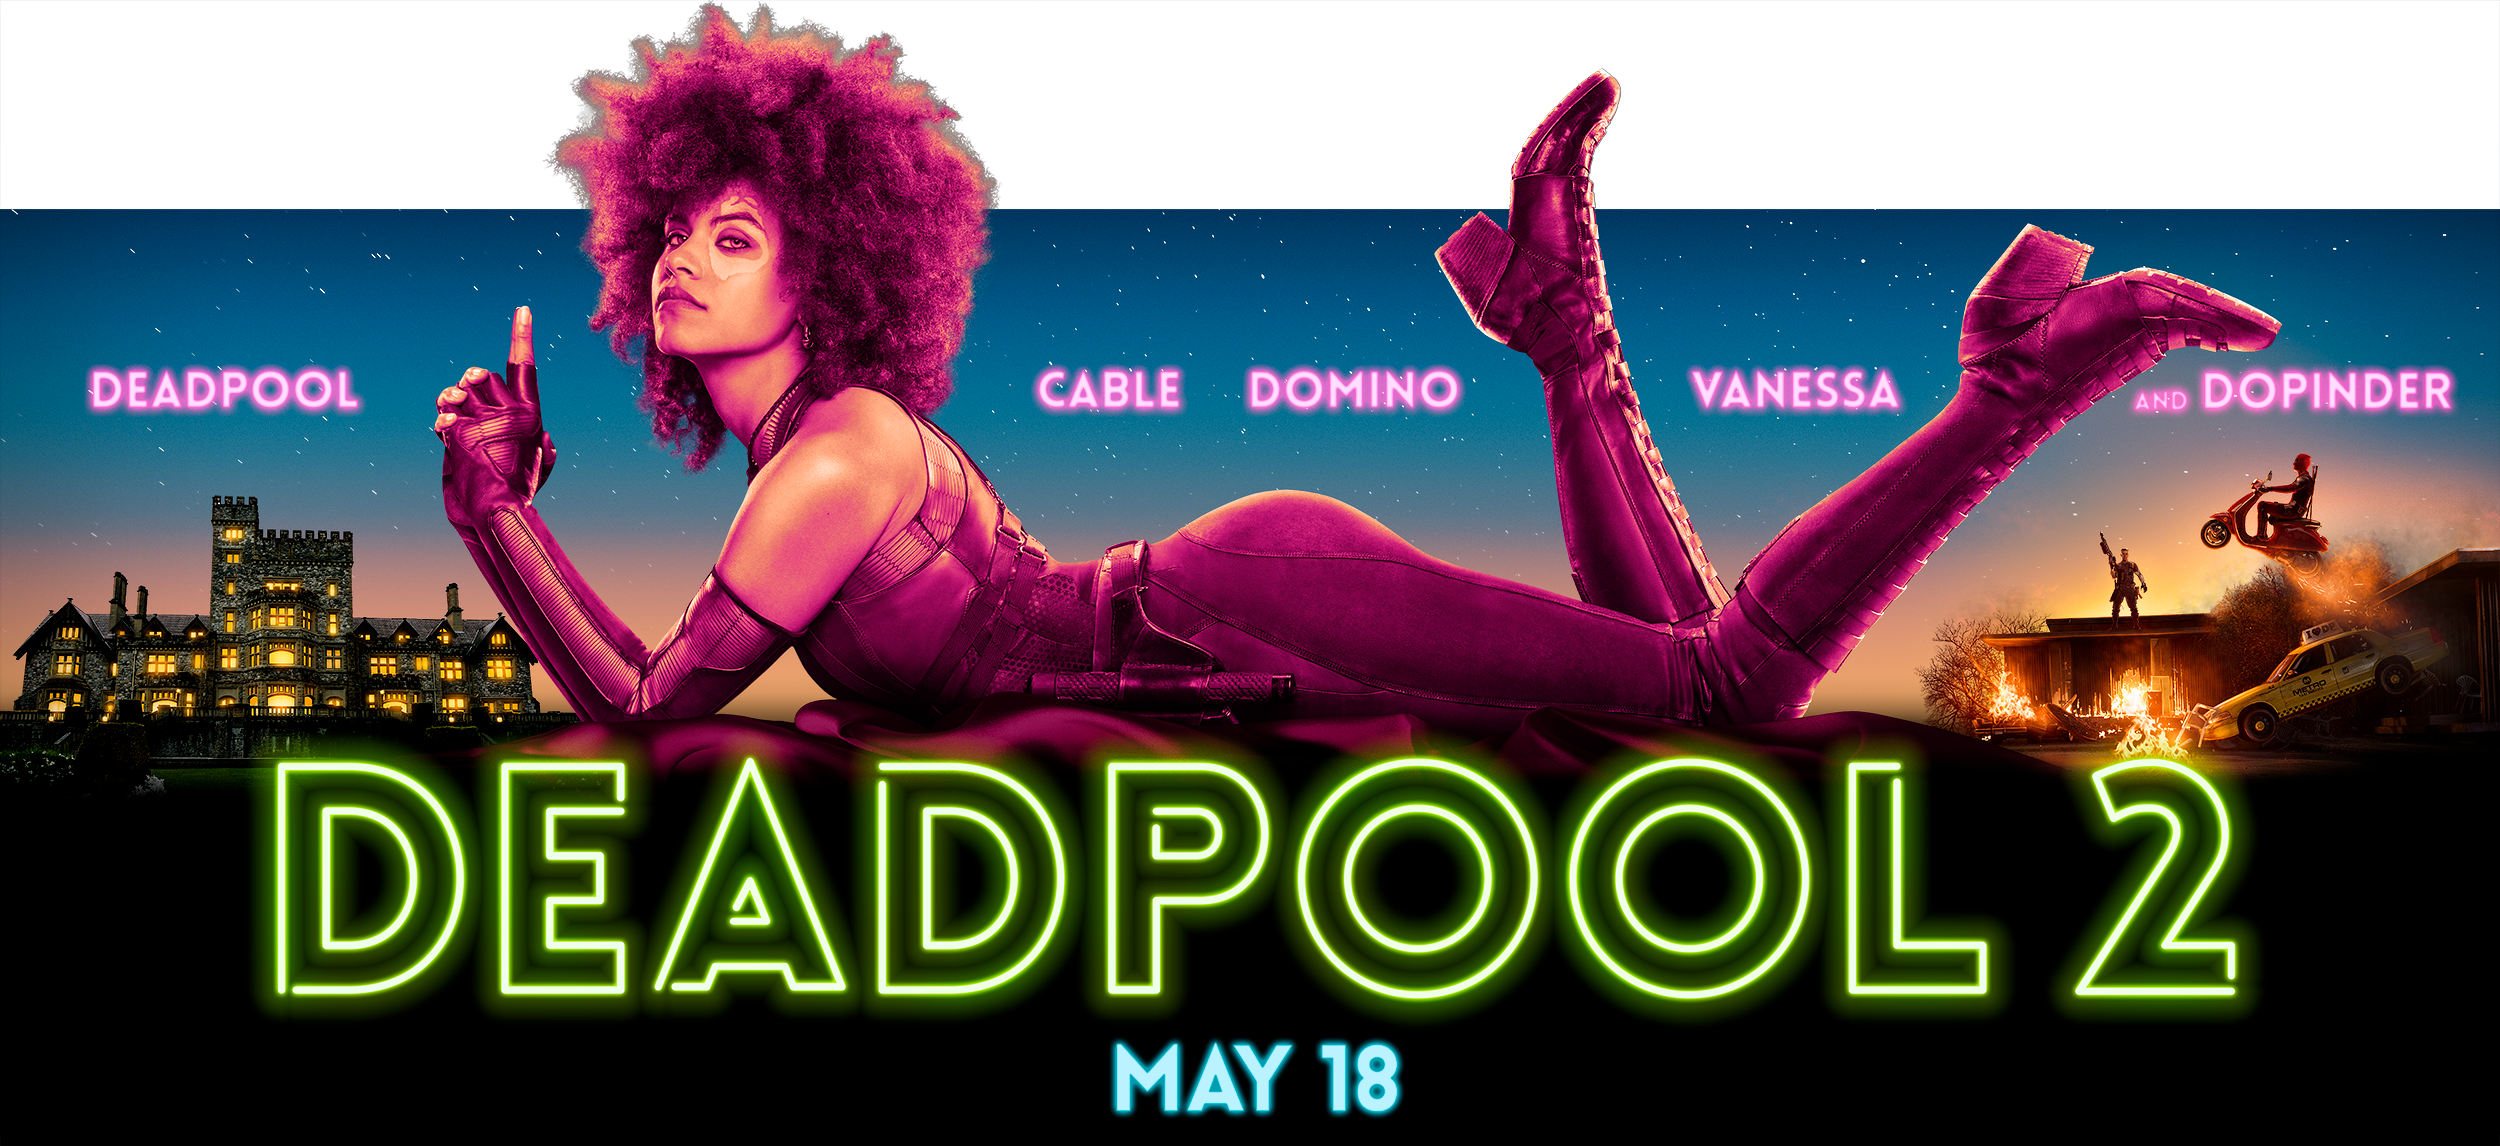 Deadpool 2 | Domino BB Concept, Finishing & Illustration